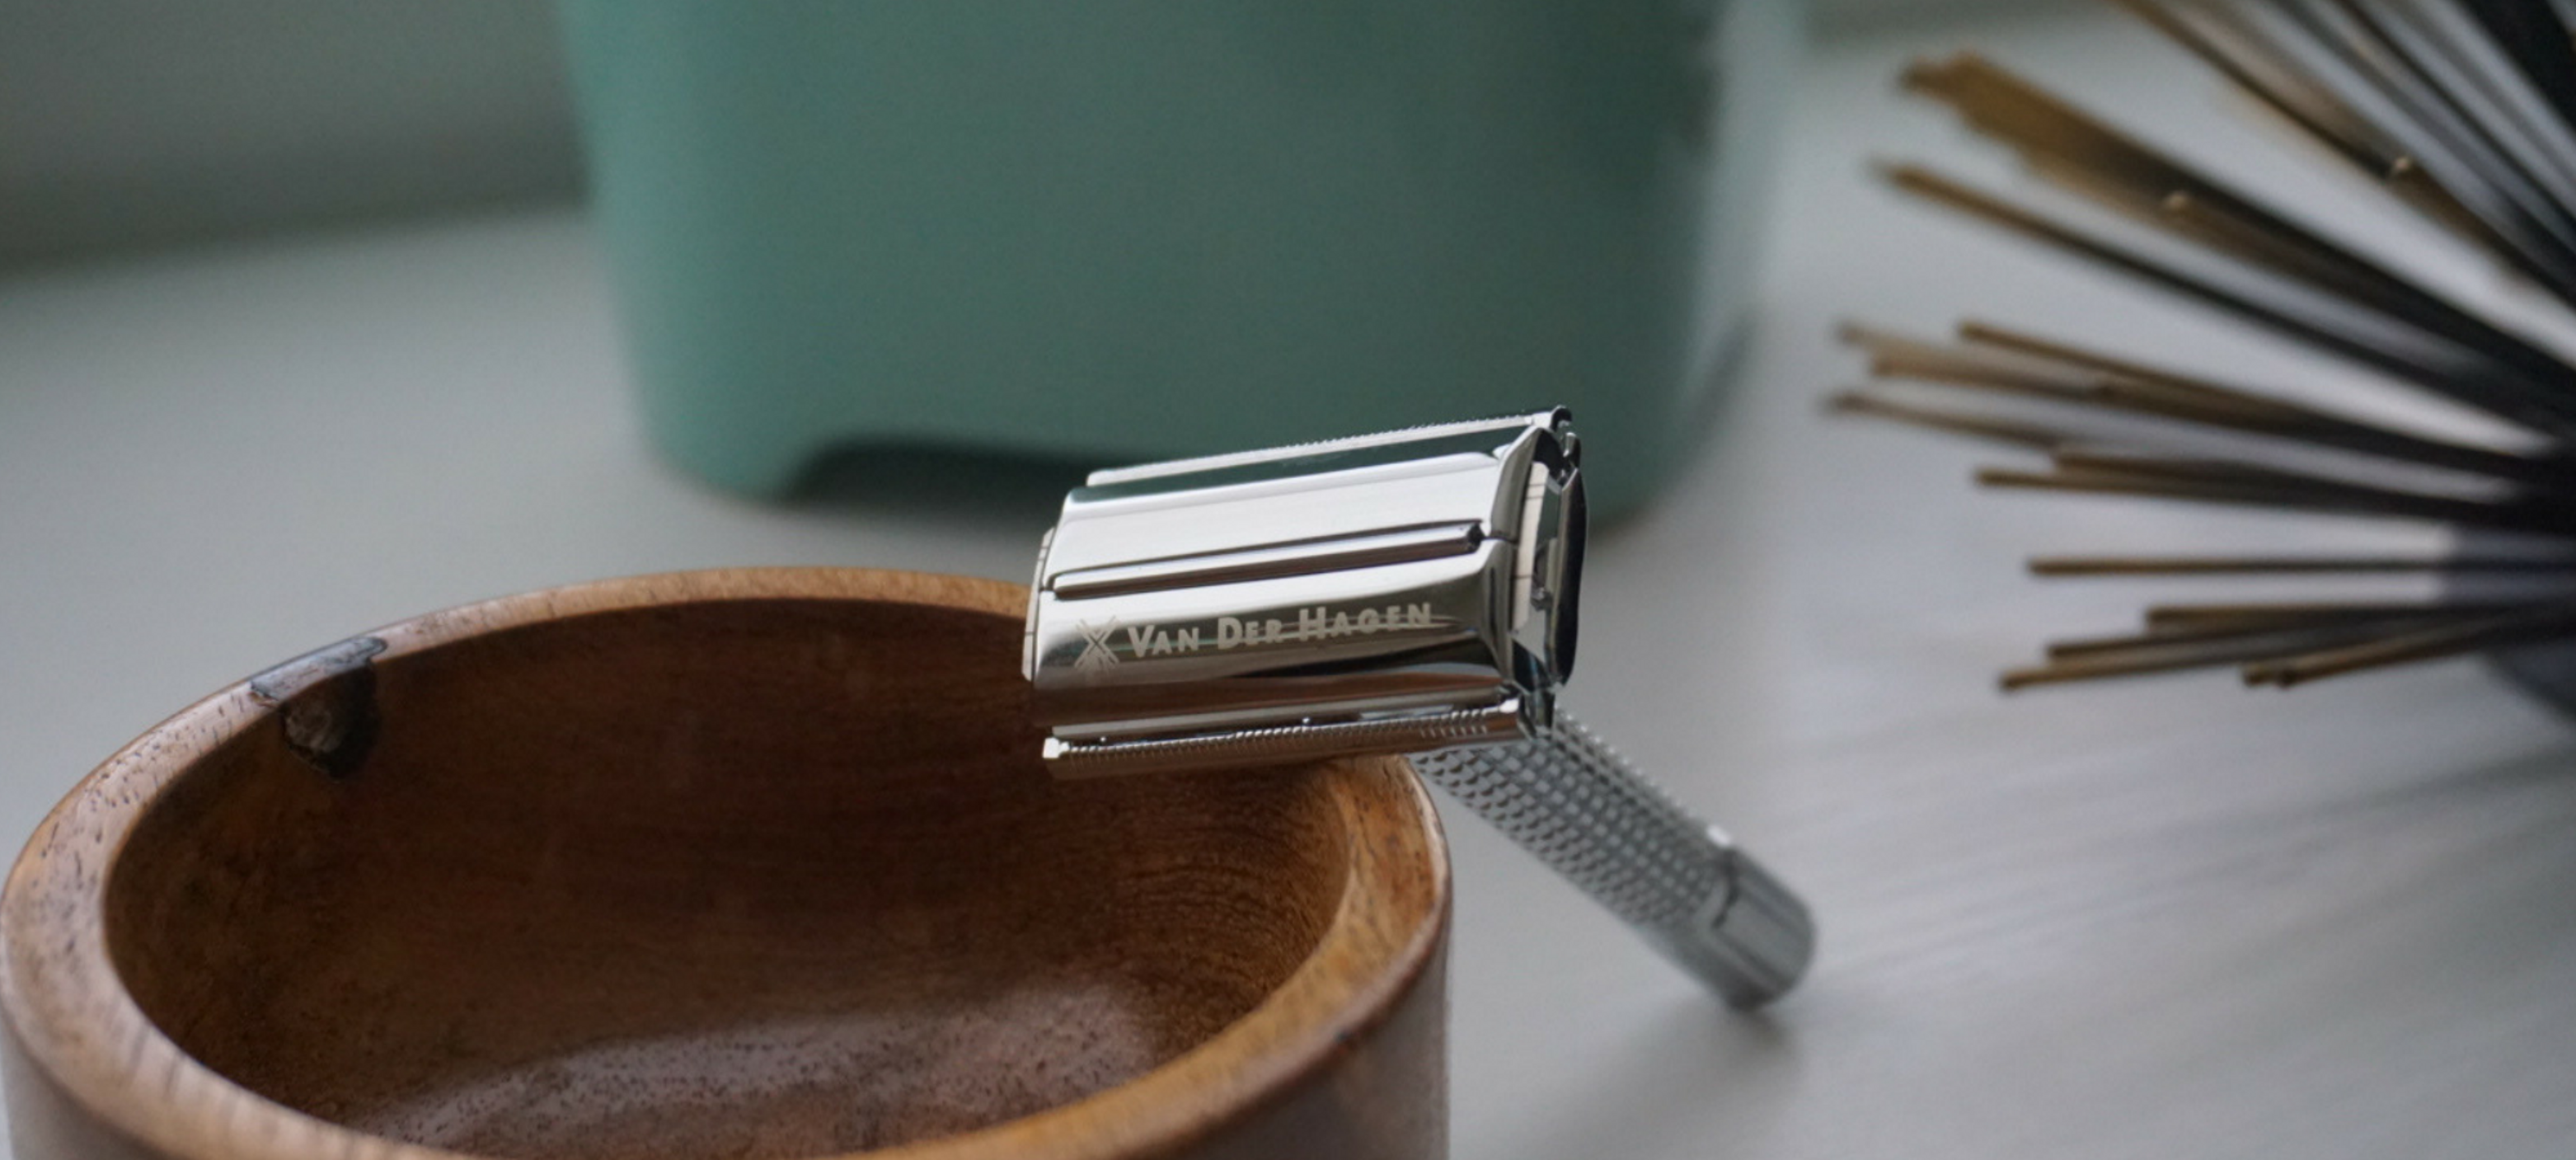 safety razor - Old World New sustainable living tips